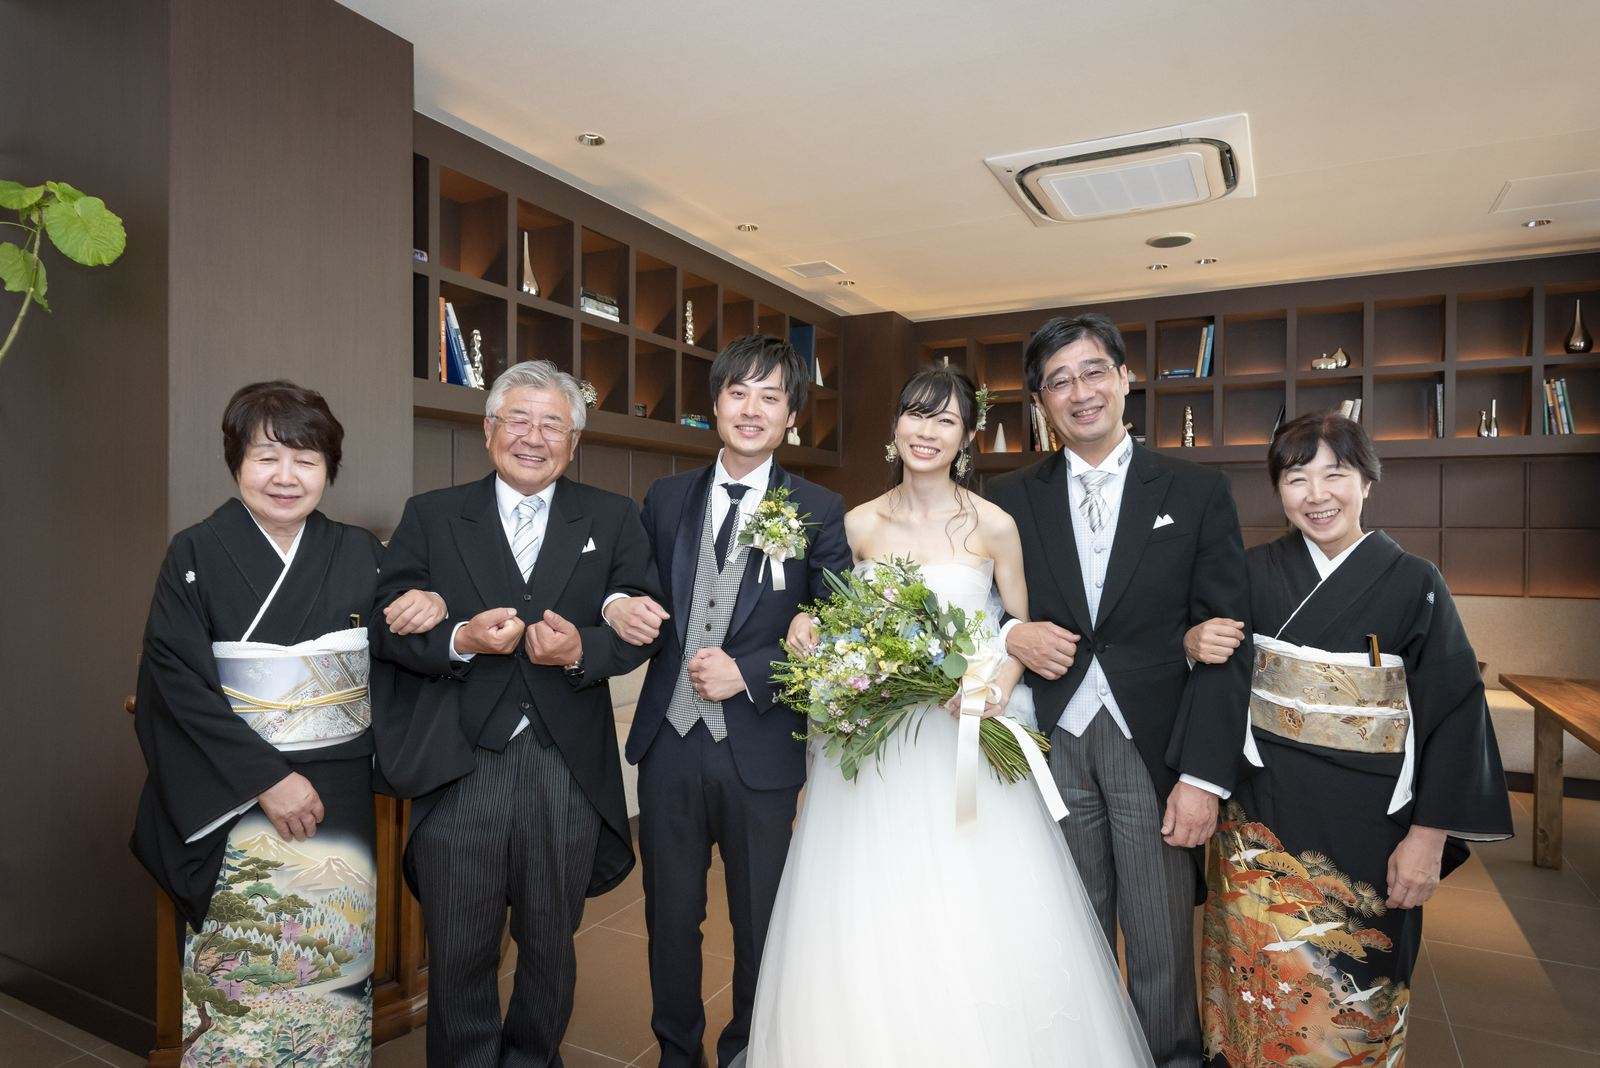 高松市の結婚式場アイルバレクラブ 両家写真